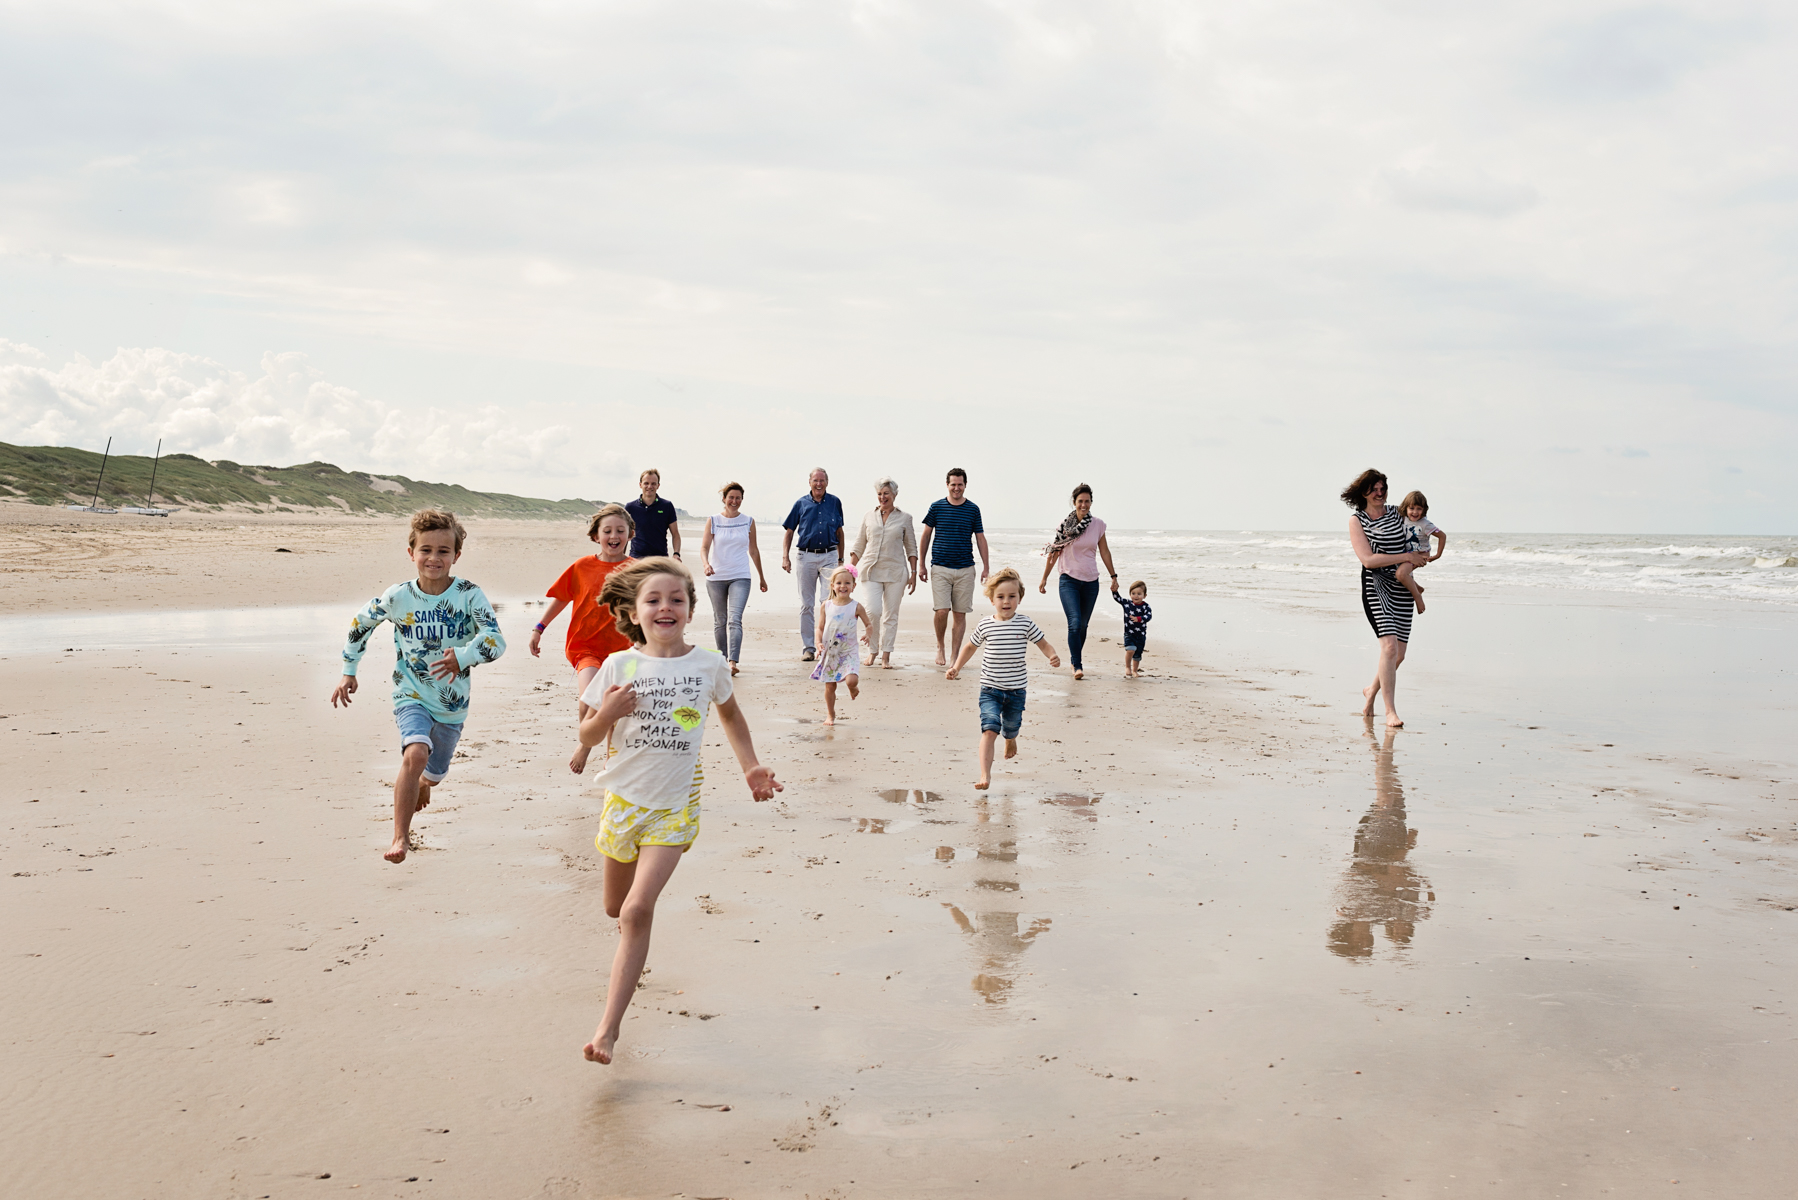 kleding familie fotoshoot zomers